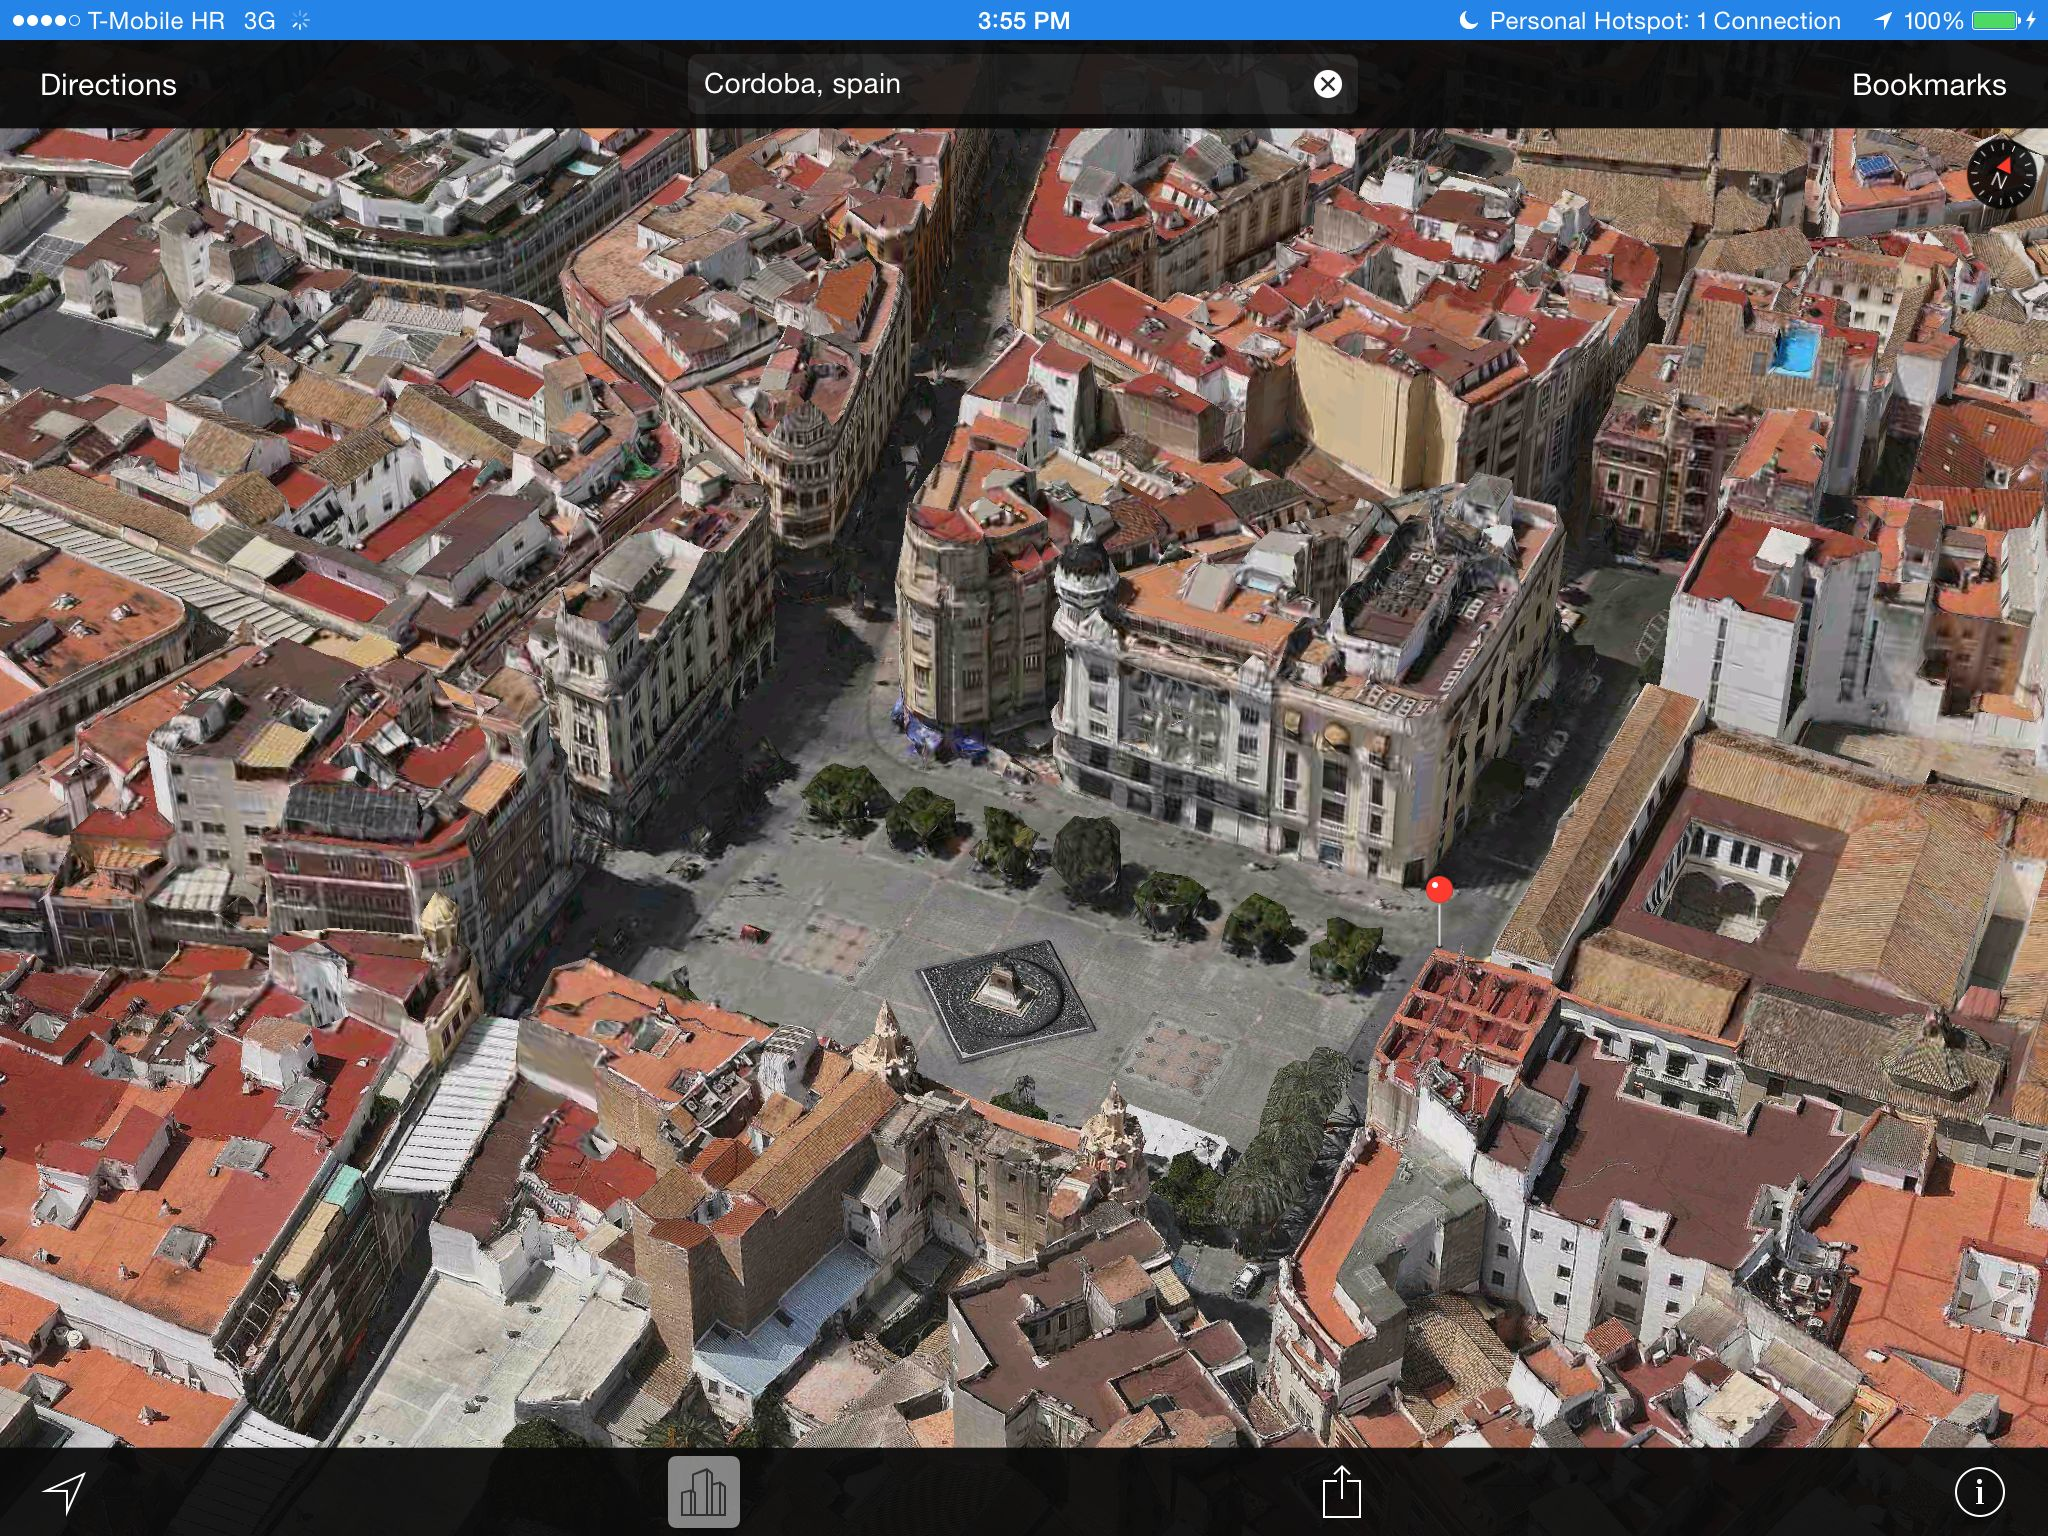 Apple Maps 3D Flyover (Cordoba, Spain)